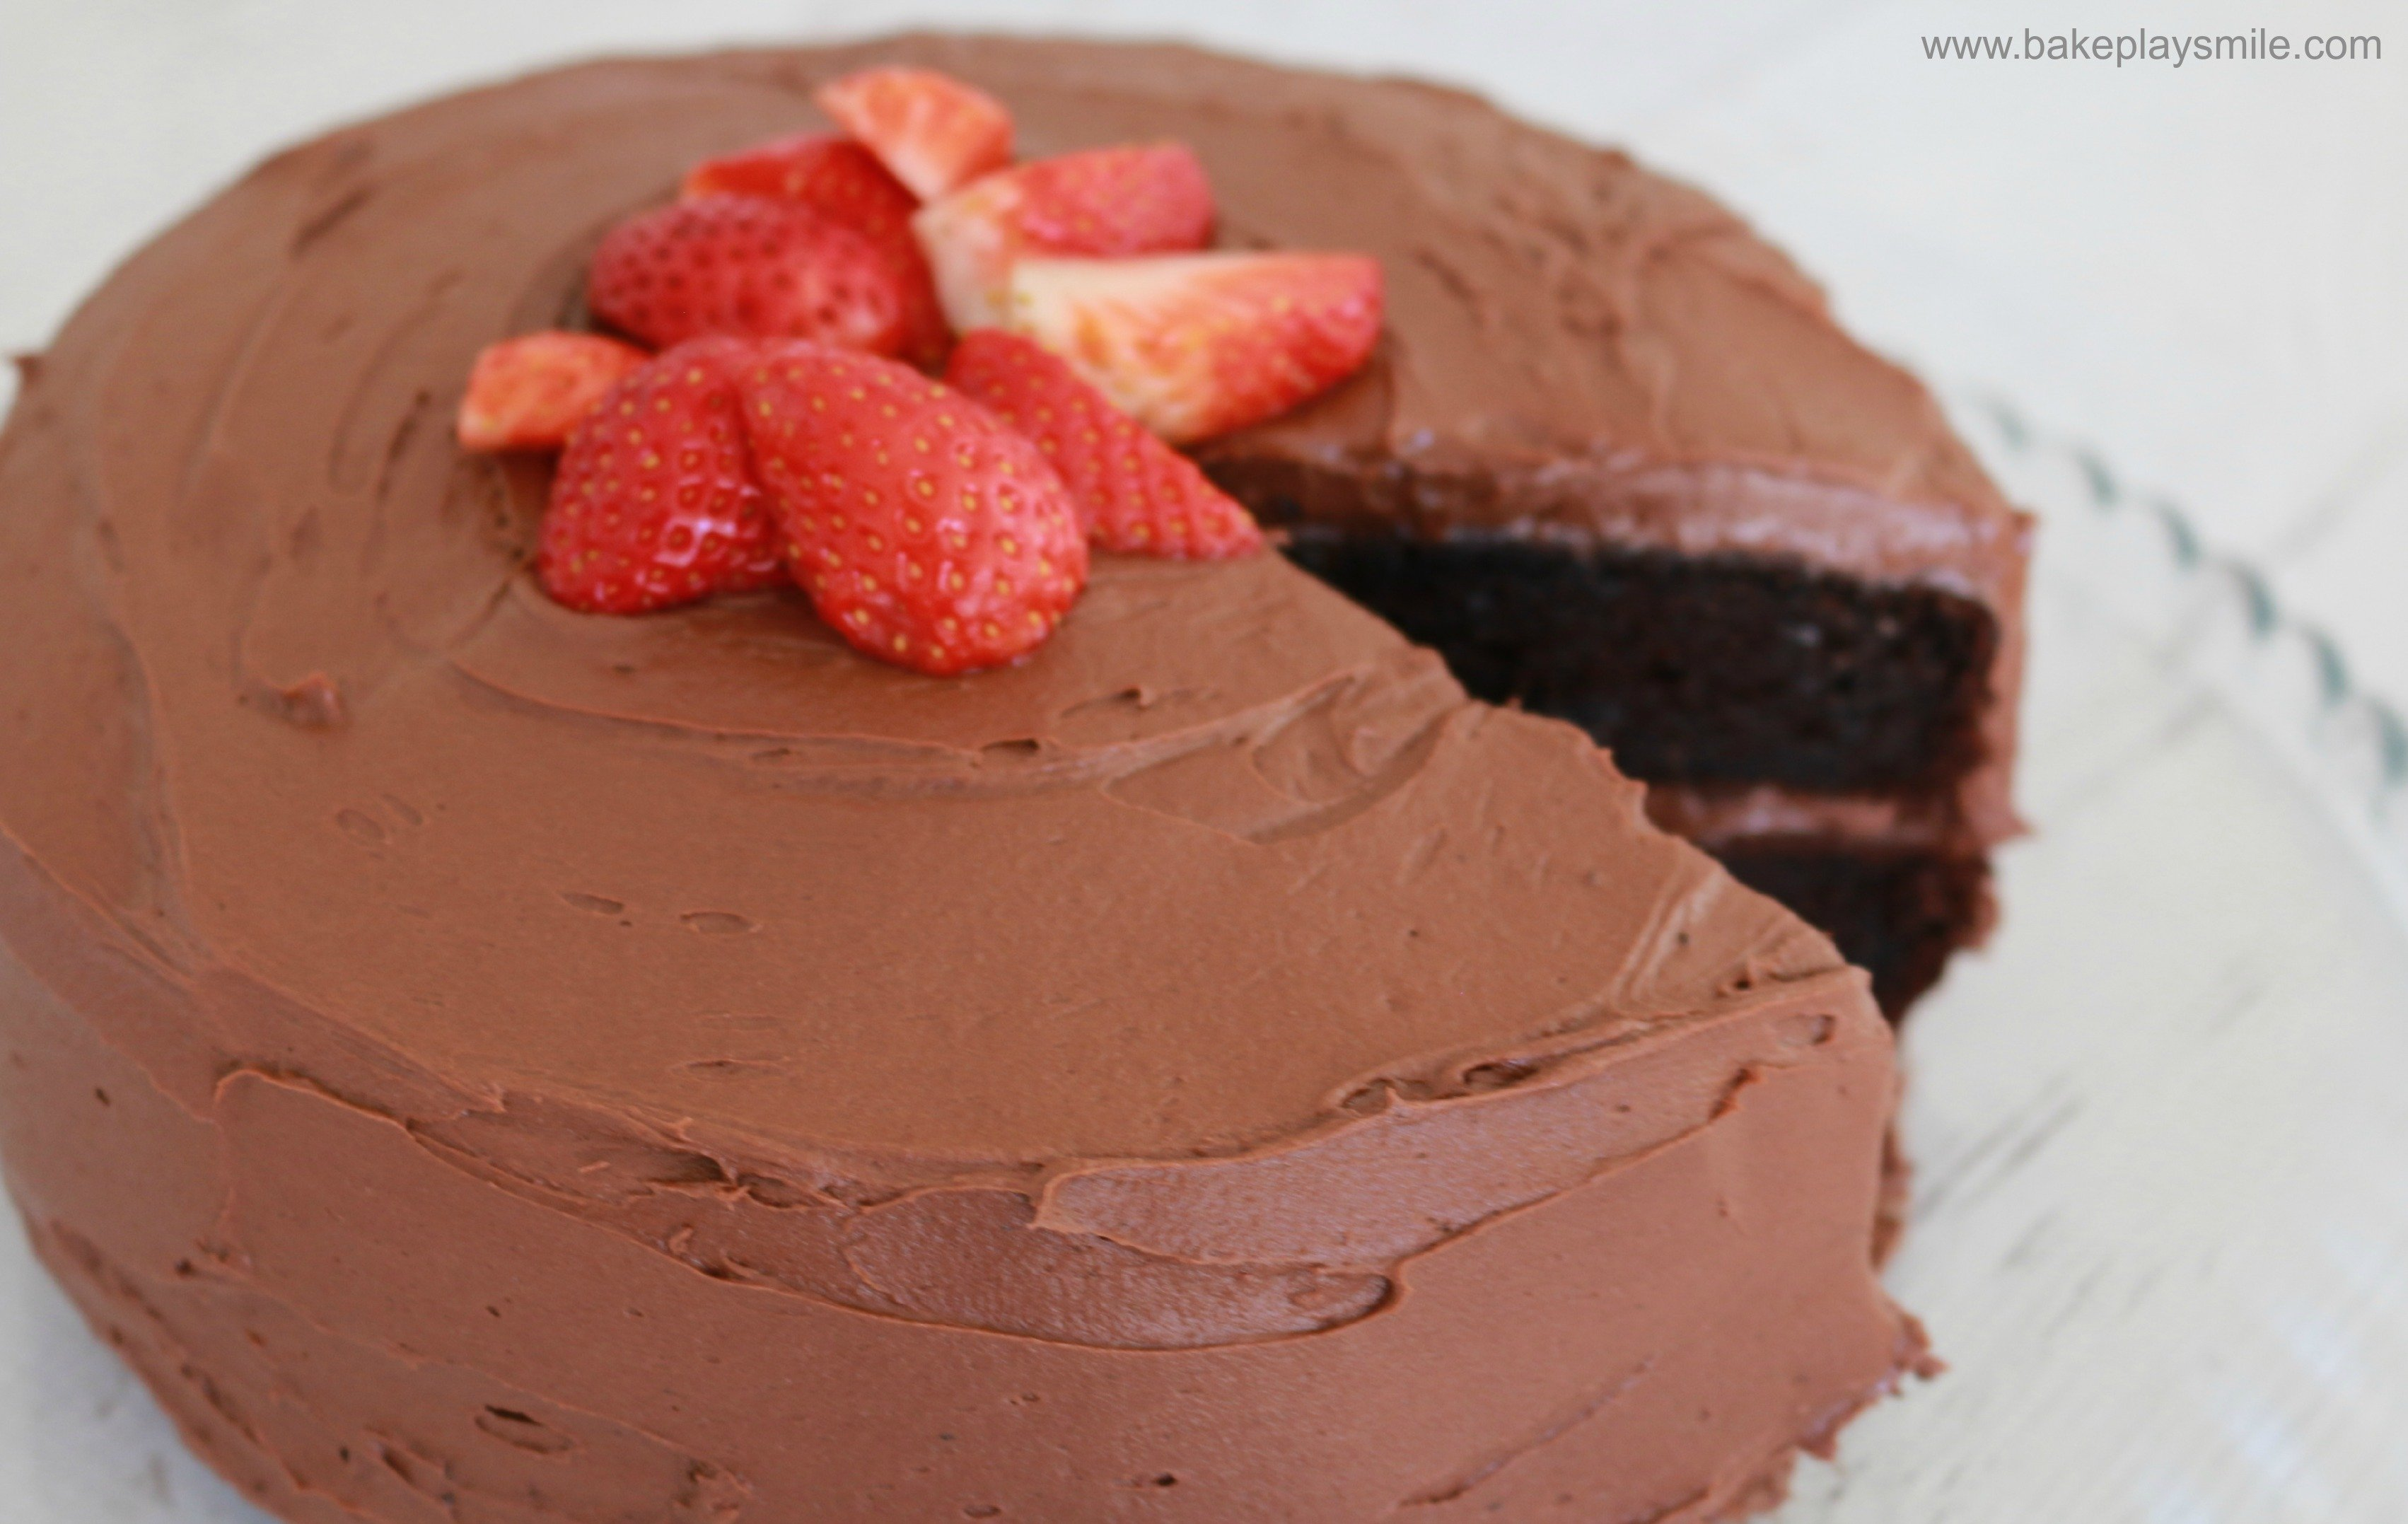 Chocolate mud cake recipe birthday cake